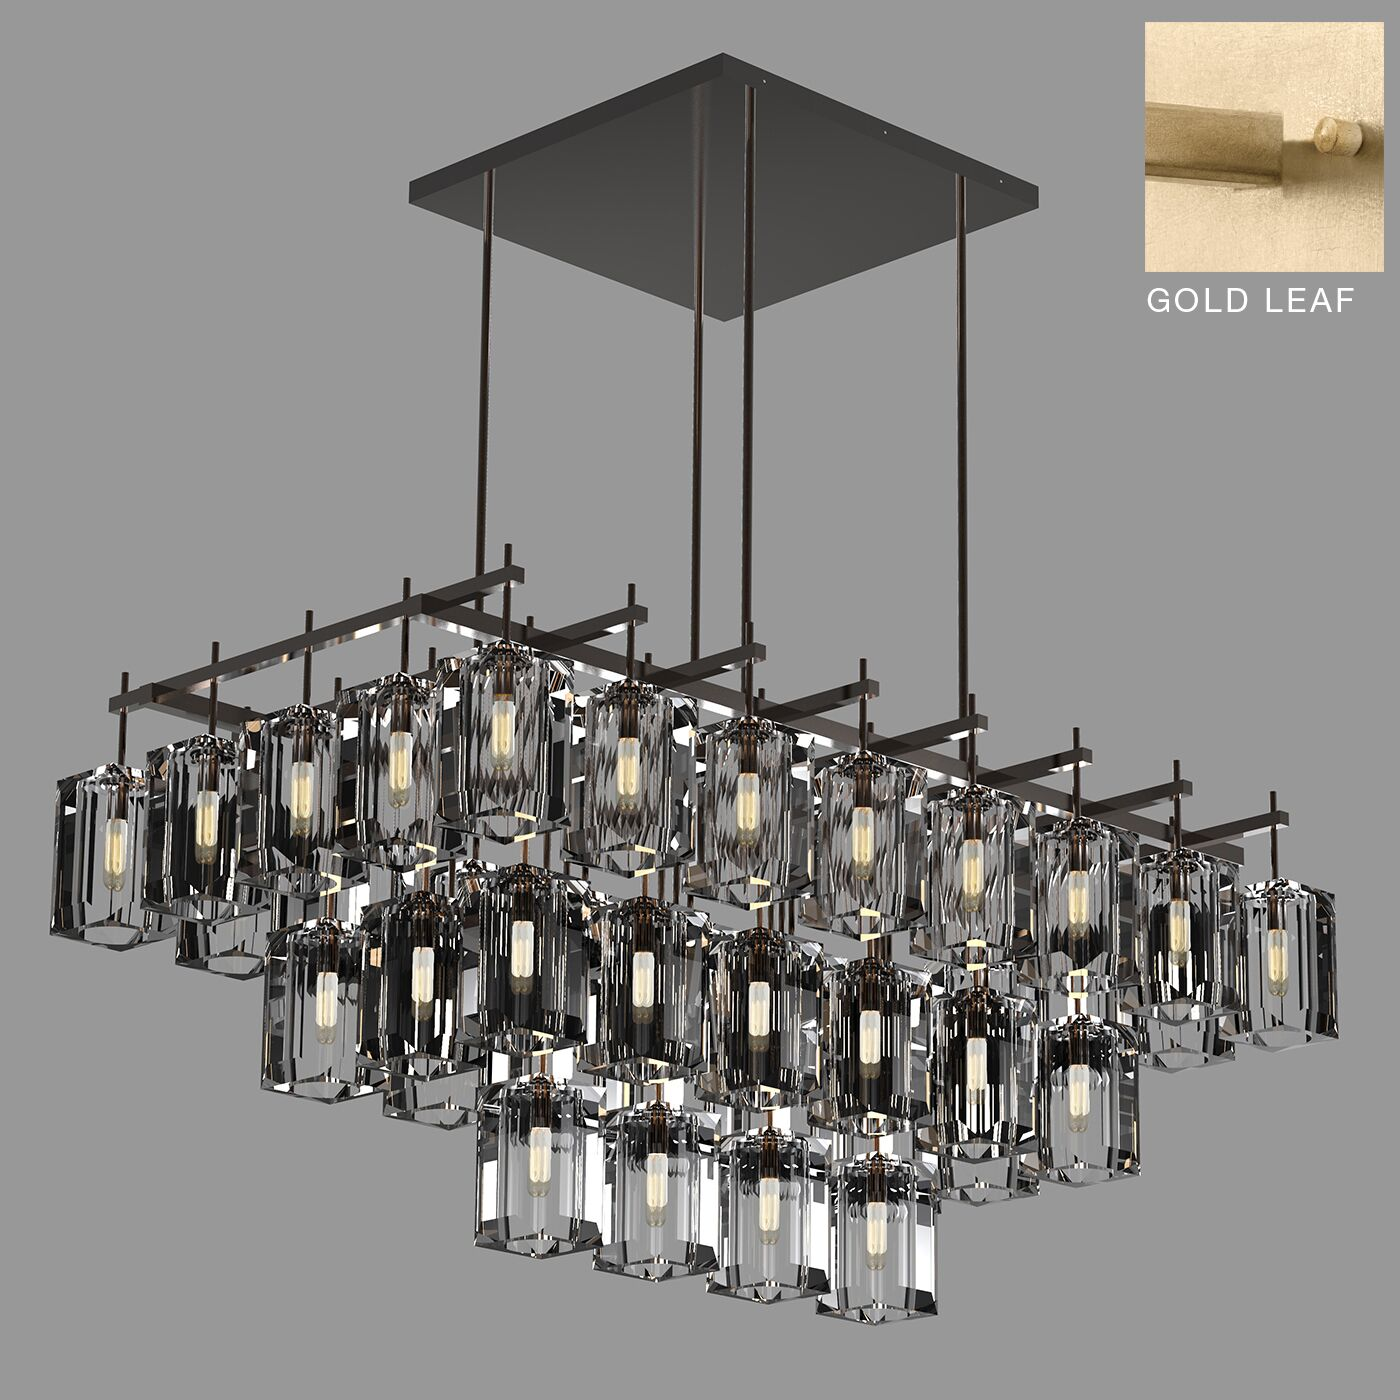 Monceau 40-Light Square/Rectangle Chandelier Finish: Gold